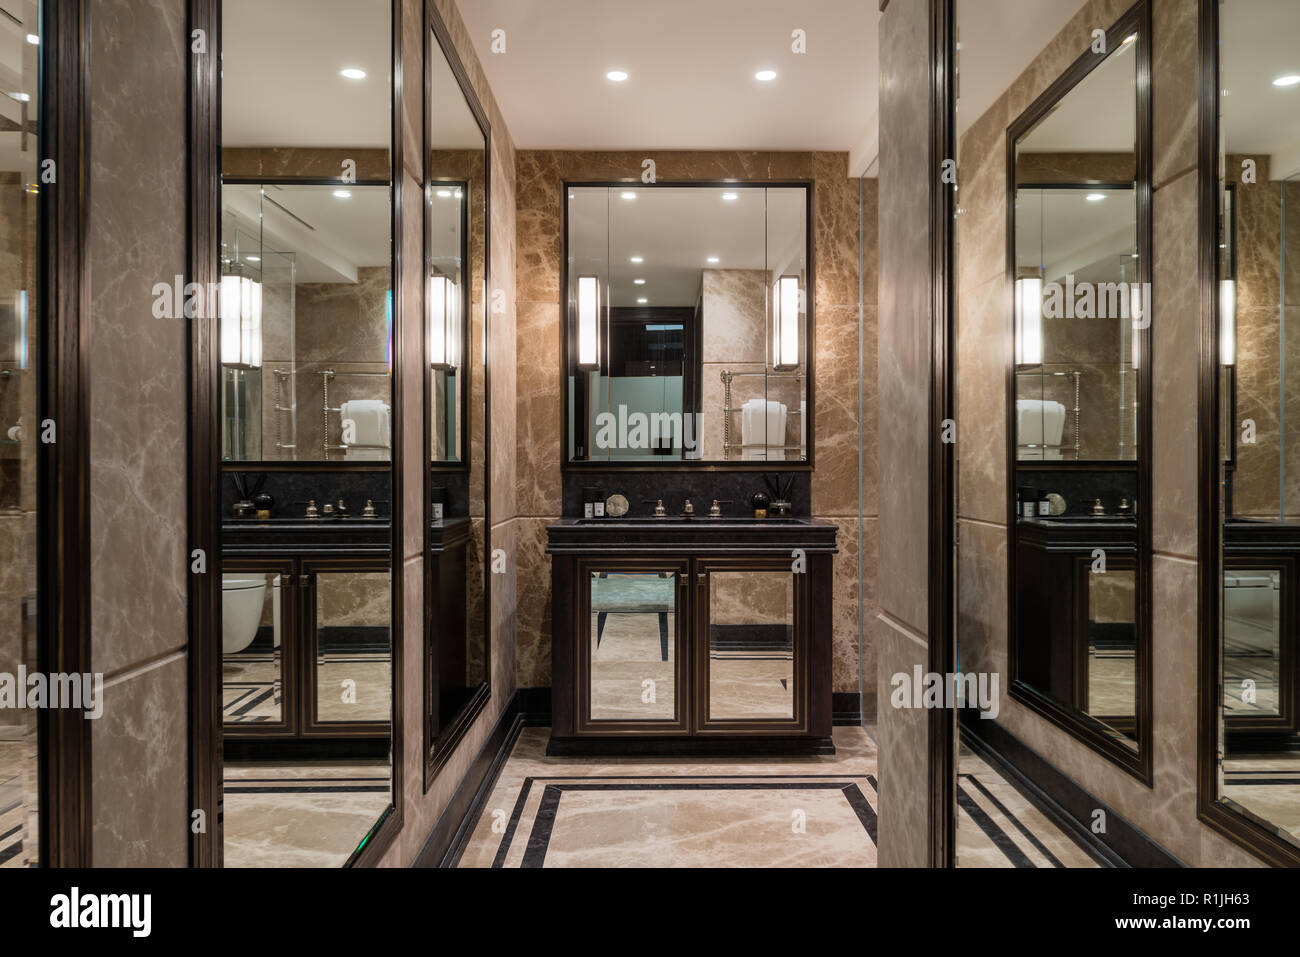 Bathroom With Mirrors Masculine Bathroom With Mirrors Stock Photo 224758075 Alamy